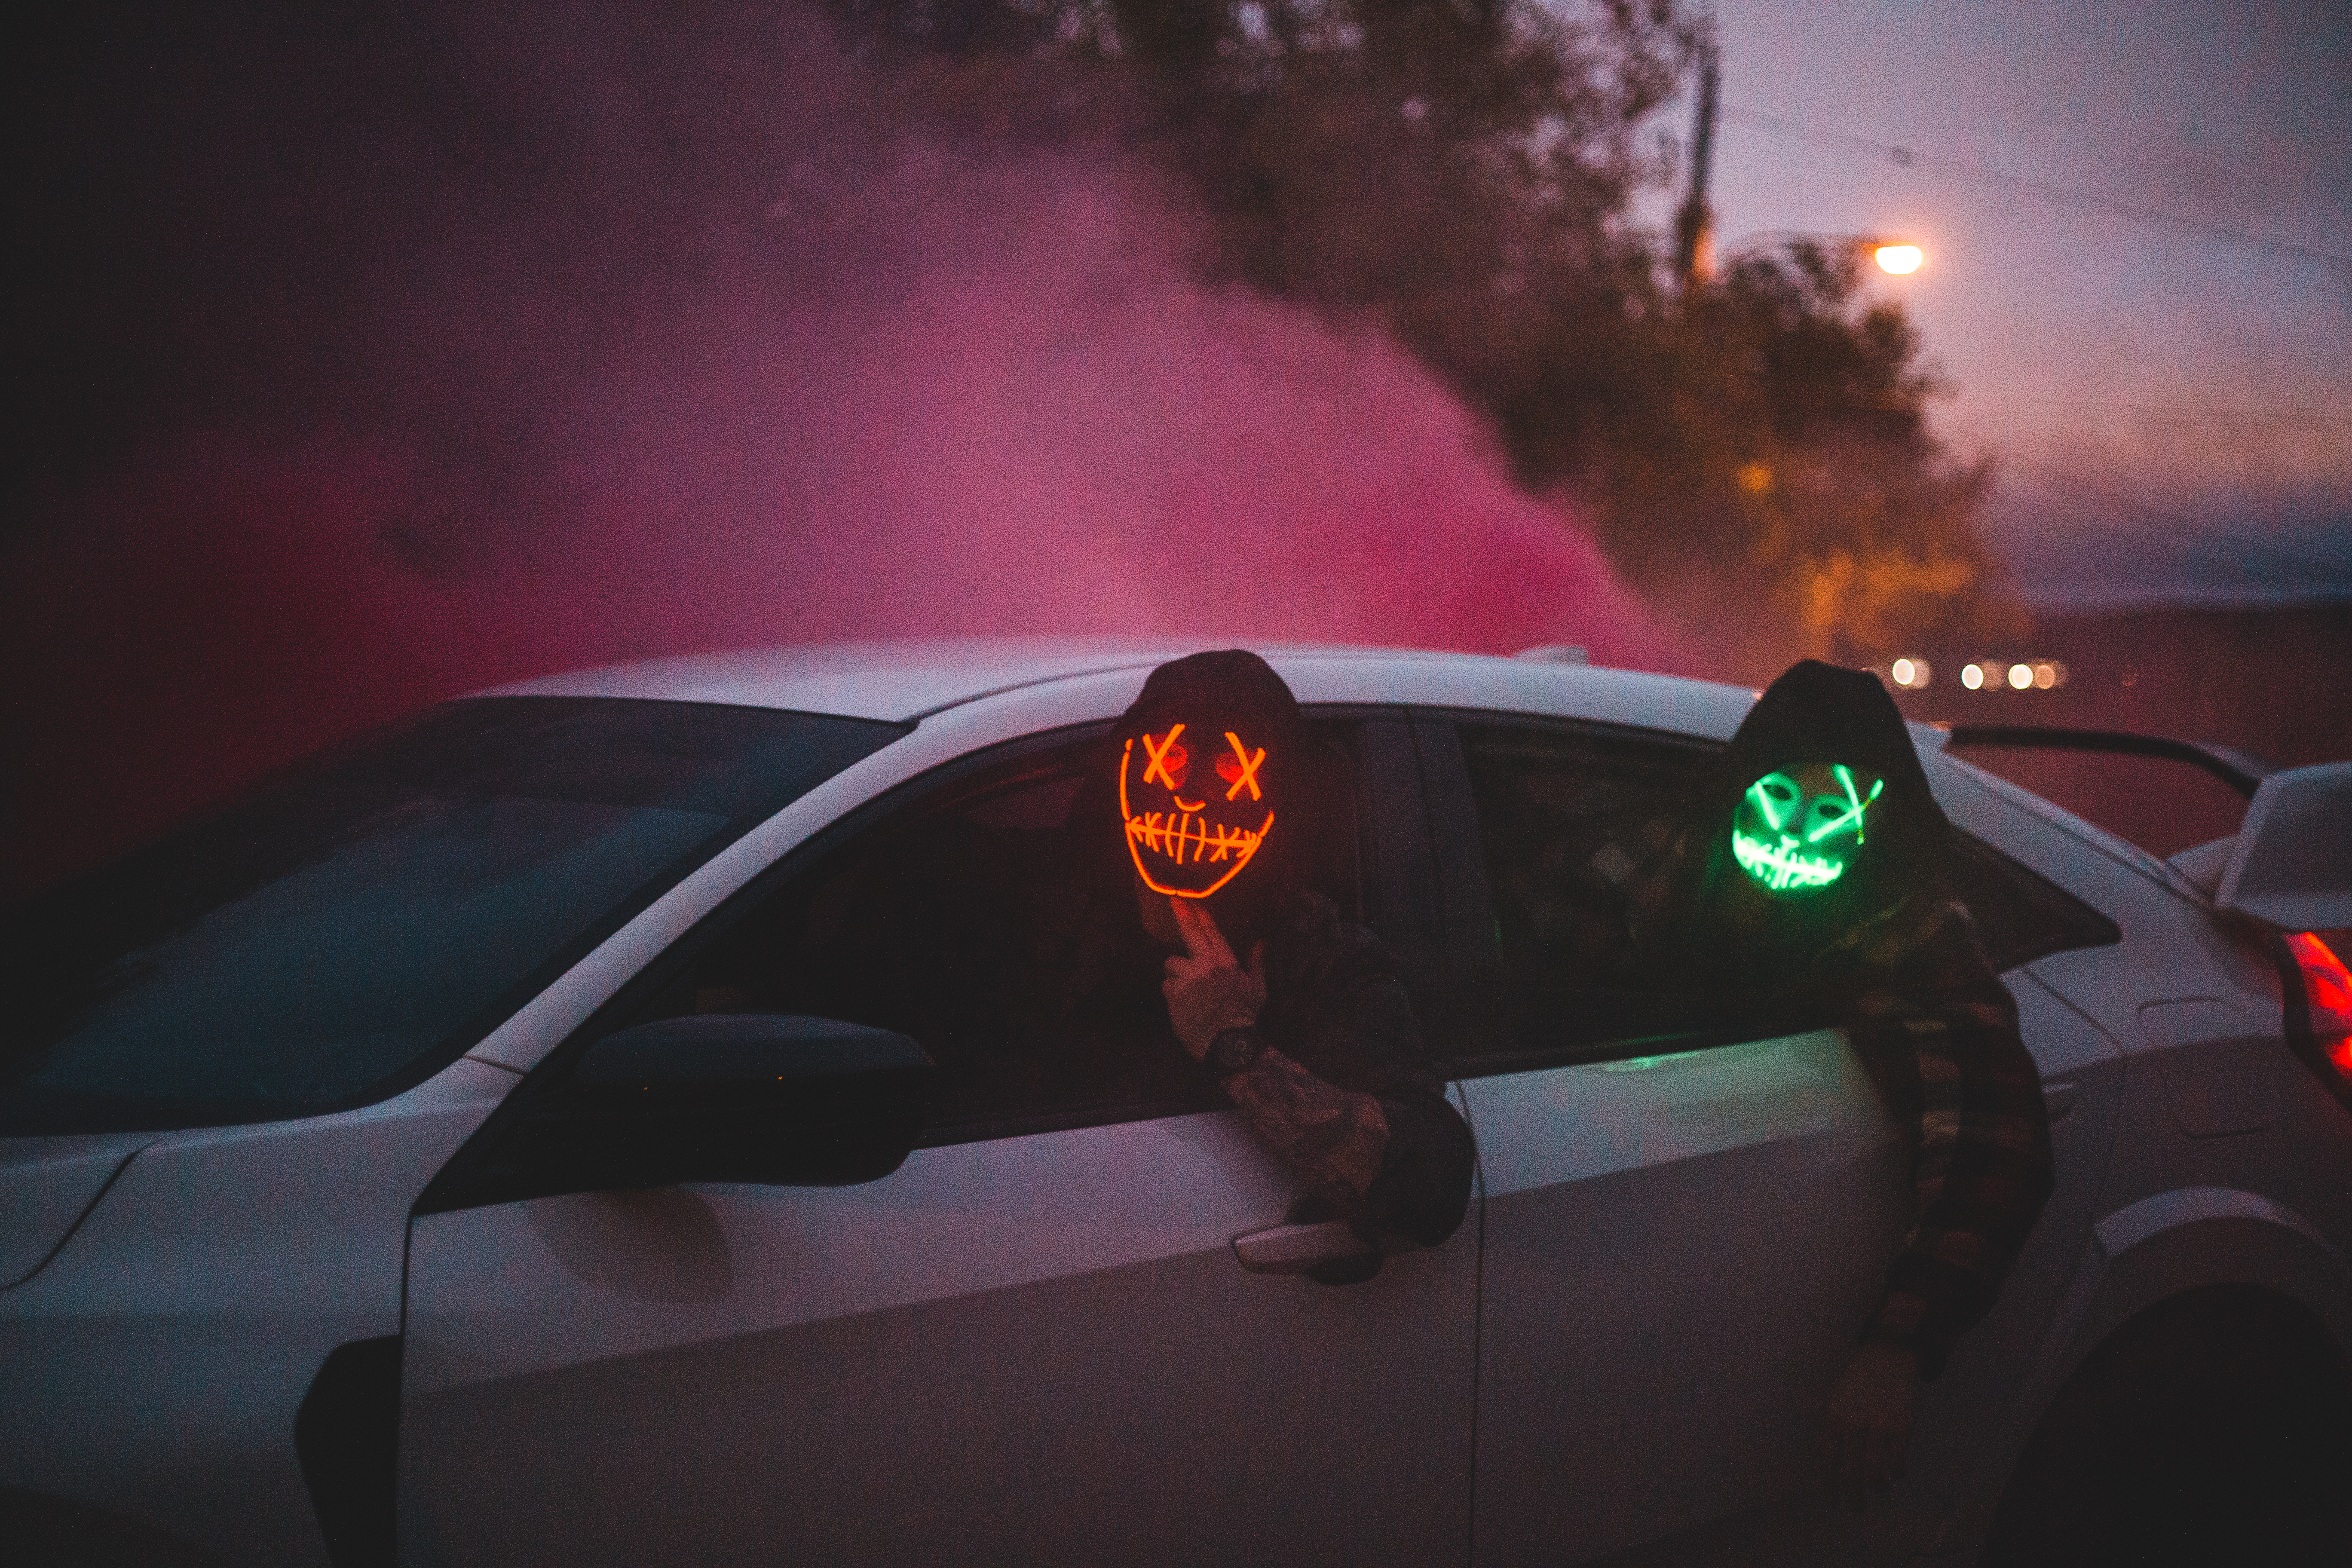 Unrecognizable Men In Glowing Halloween Masks Driving Car At Night Free Stock Photo Anonymous mask guy white car road